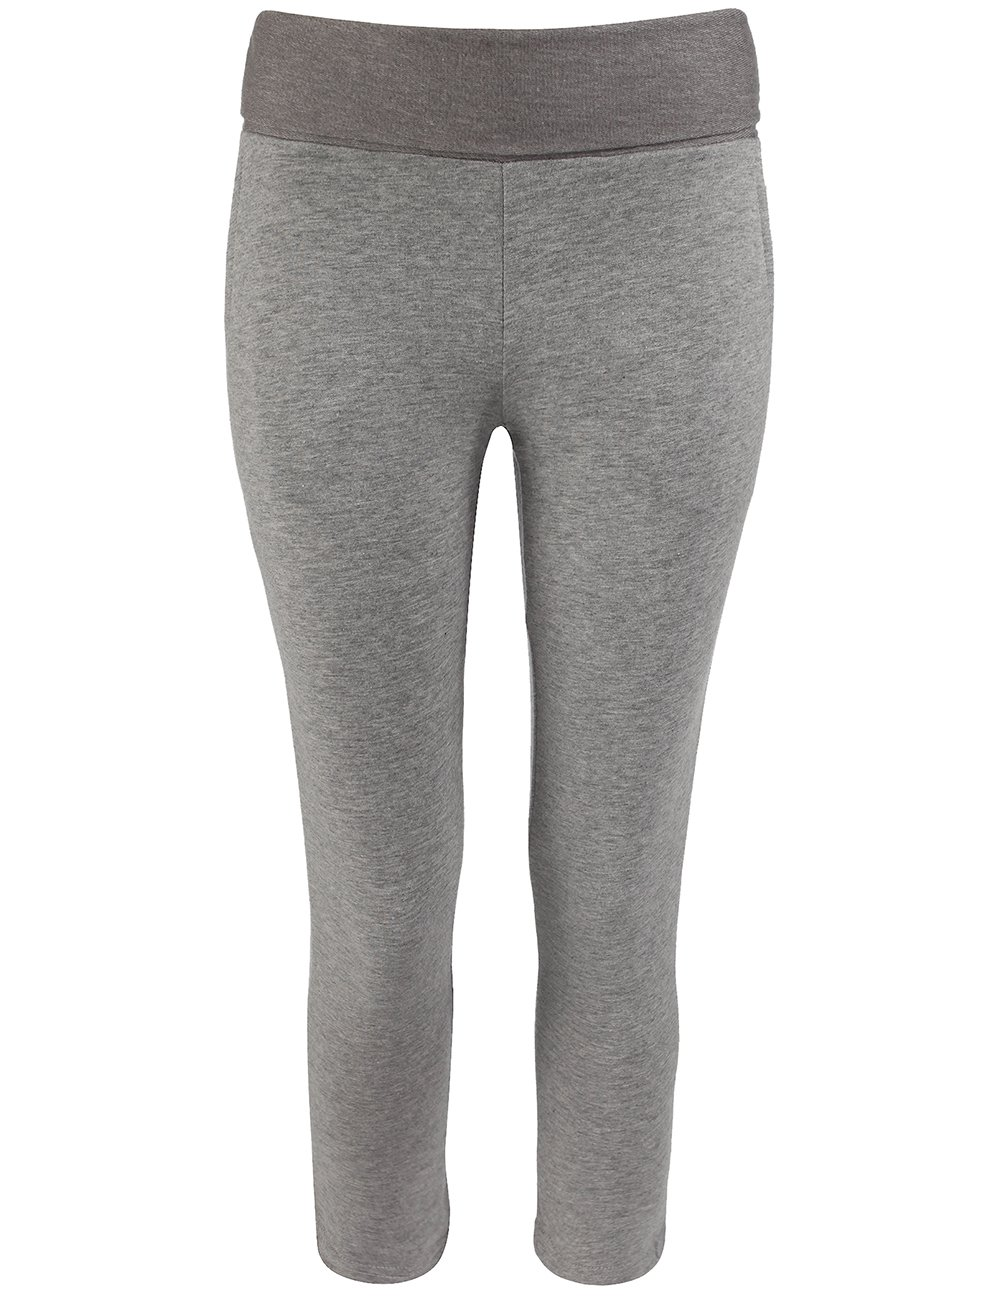 Bench Twopenny BGNK0216 Girls'Jogging Bottoms (Manufacturer Size: 13-14) B00RMXJO2SGrey Marl13-14